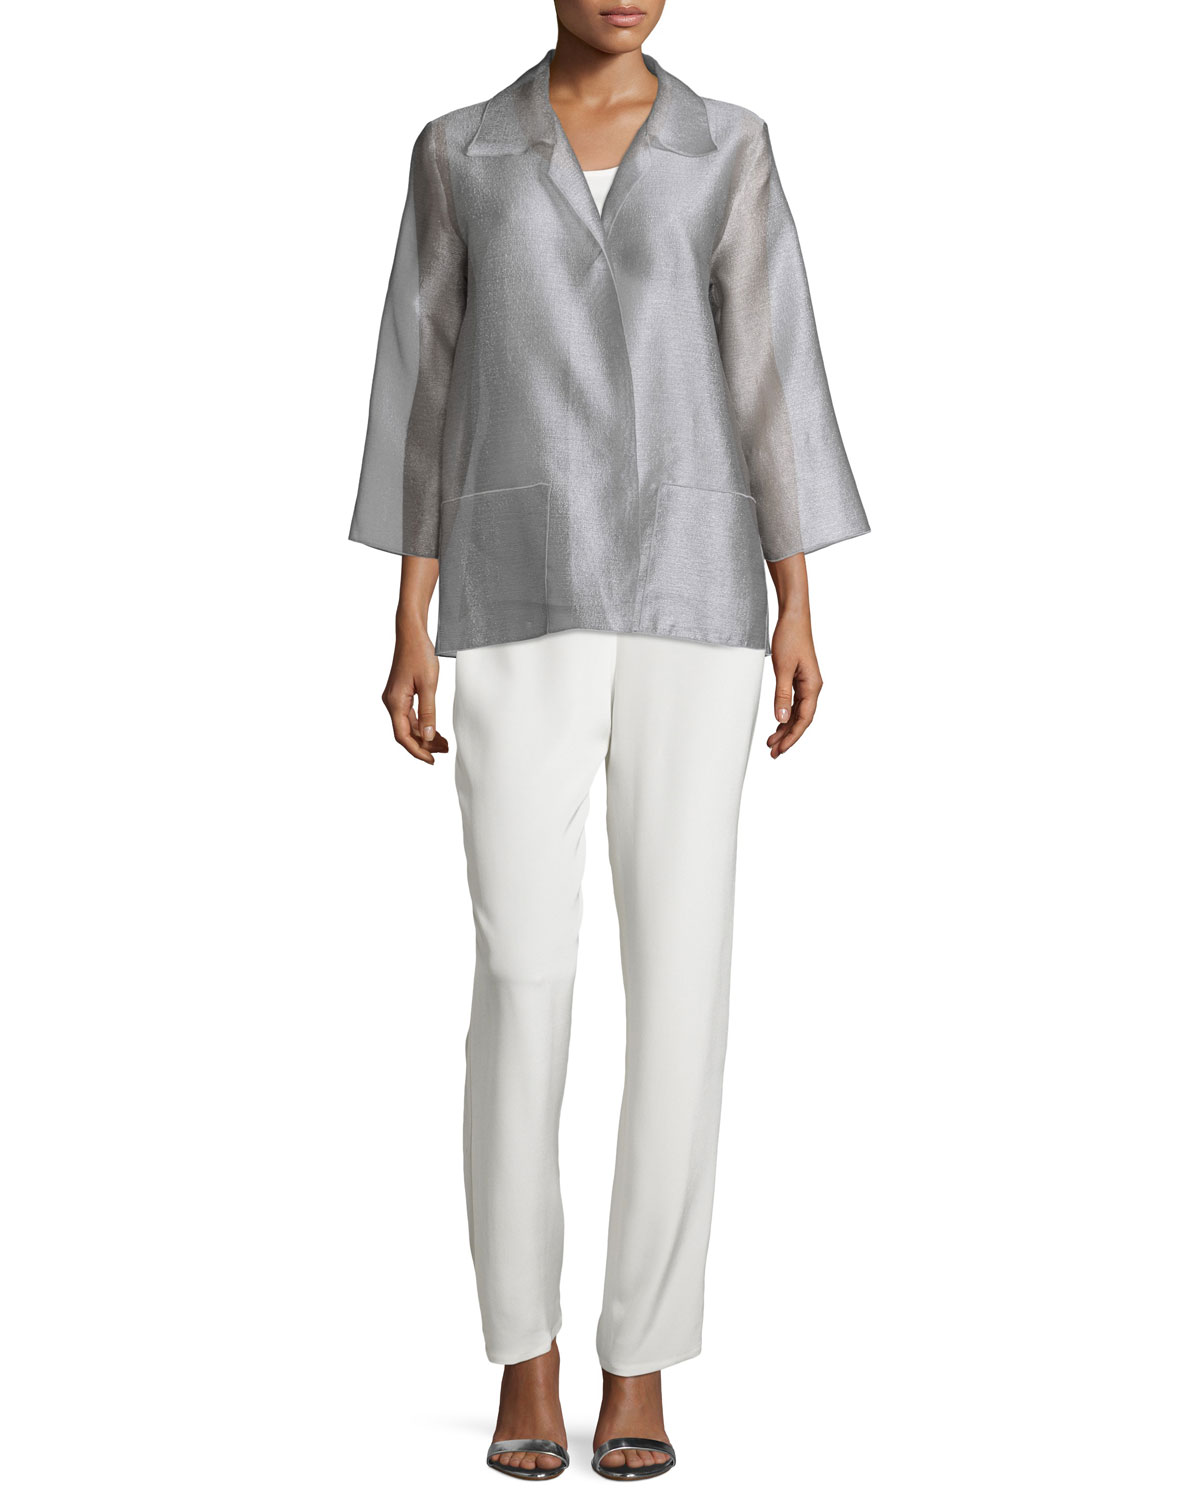 Silk Crepe Straight-Leg Pants, White, Petite